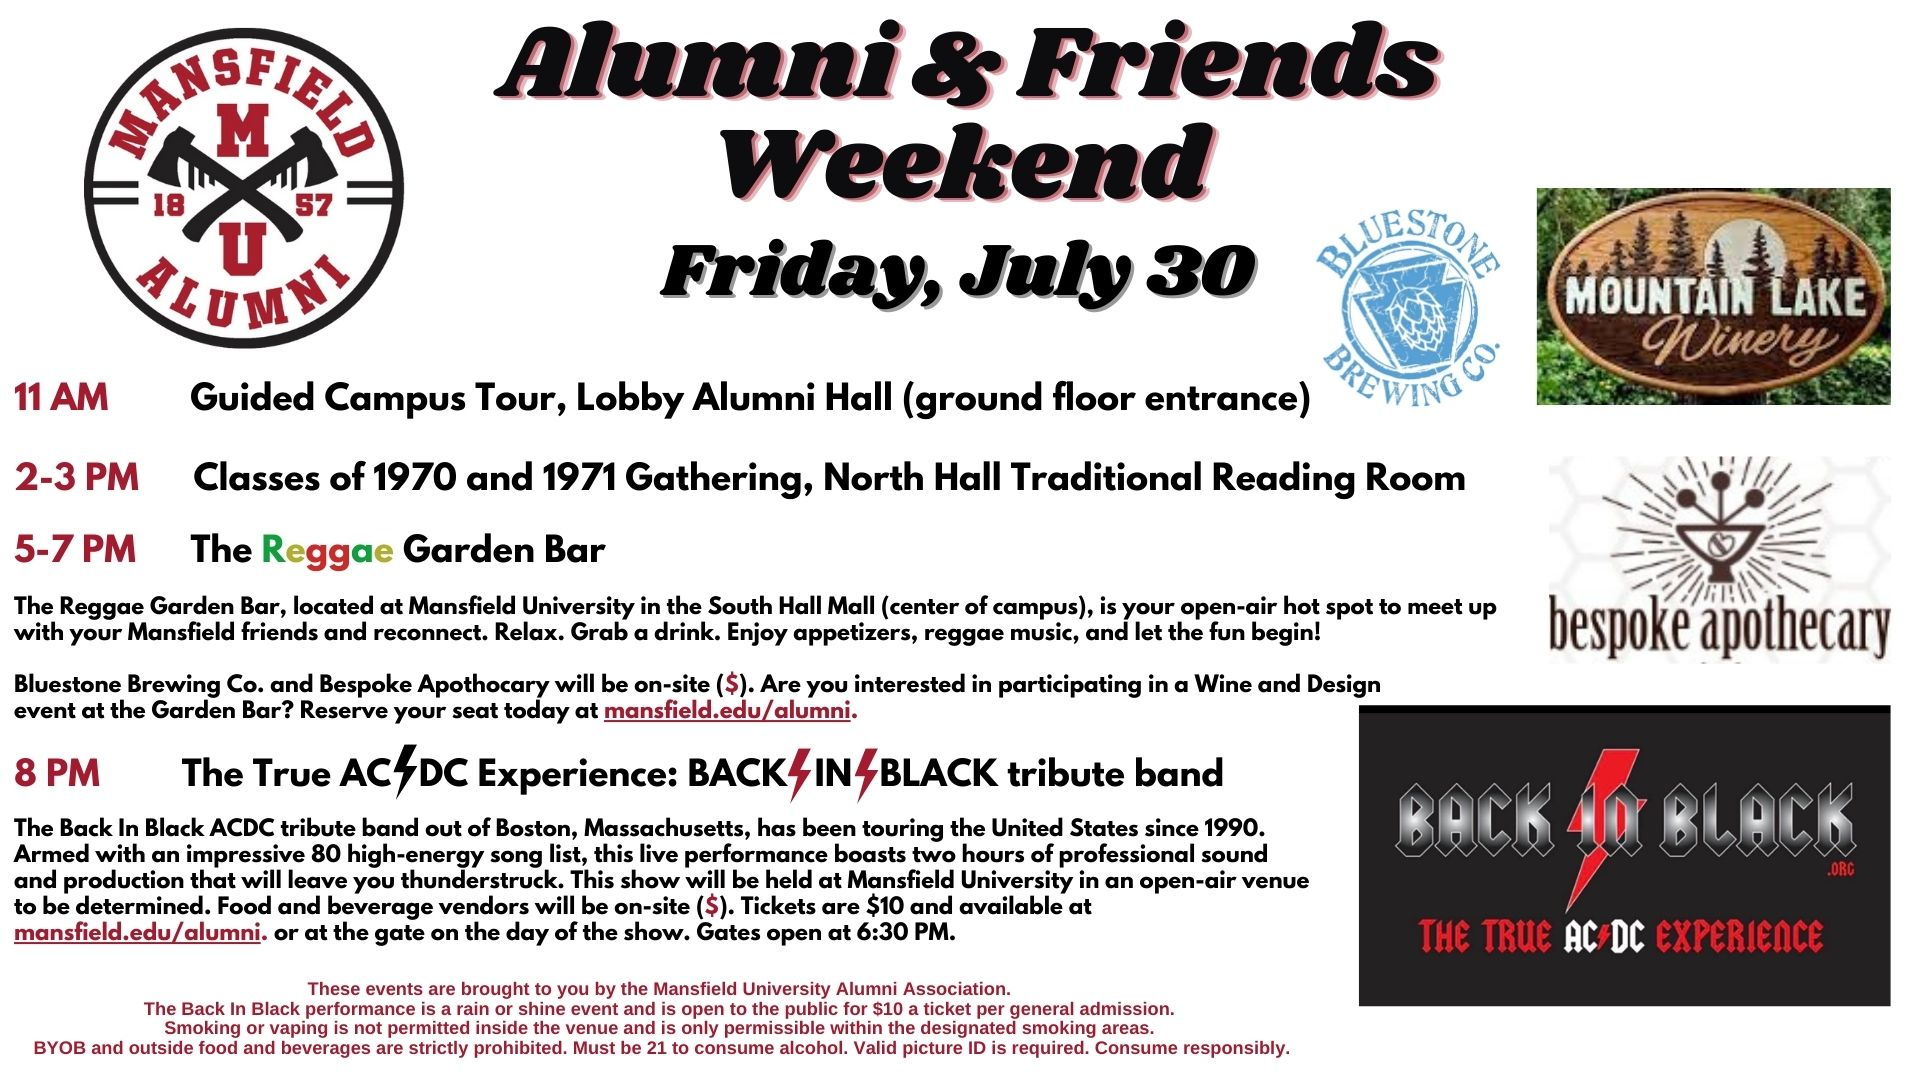 Alumni and Friends Weekend, Friday July 30th, 2021